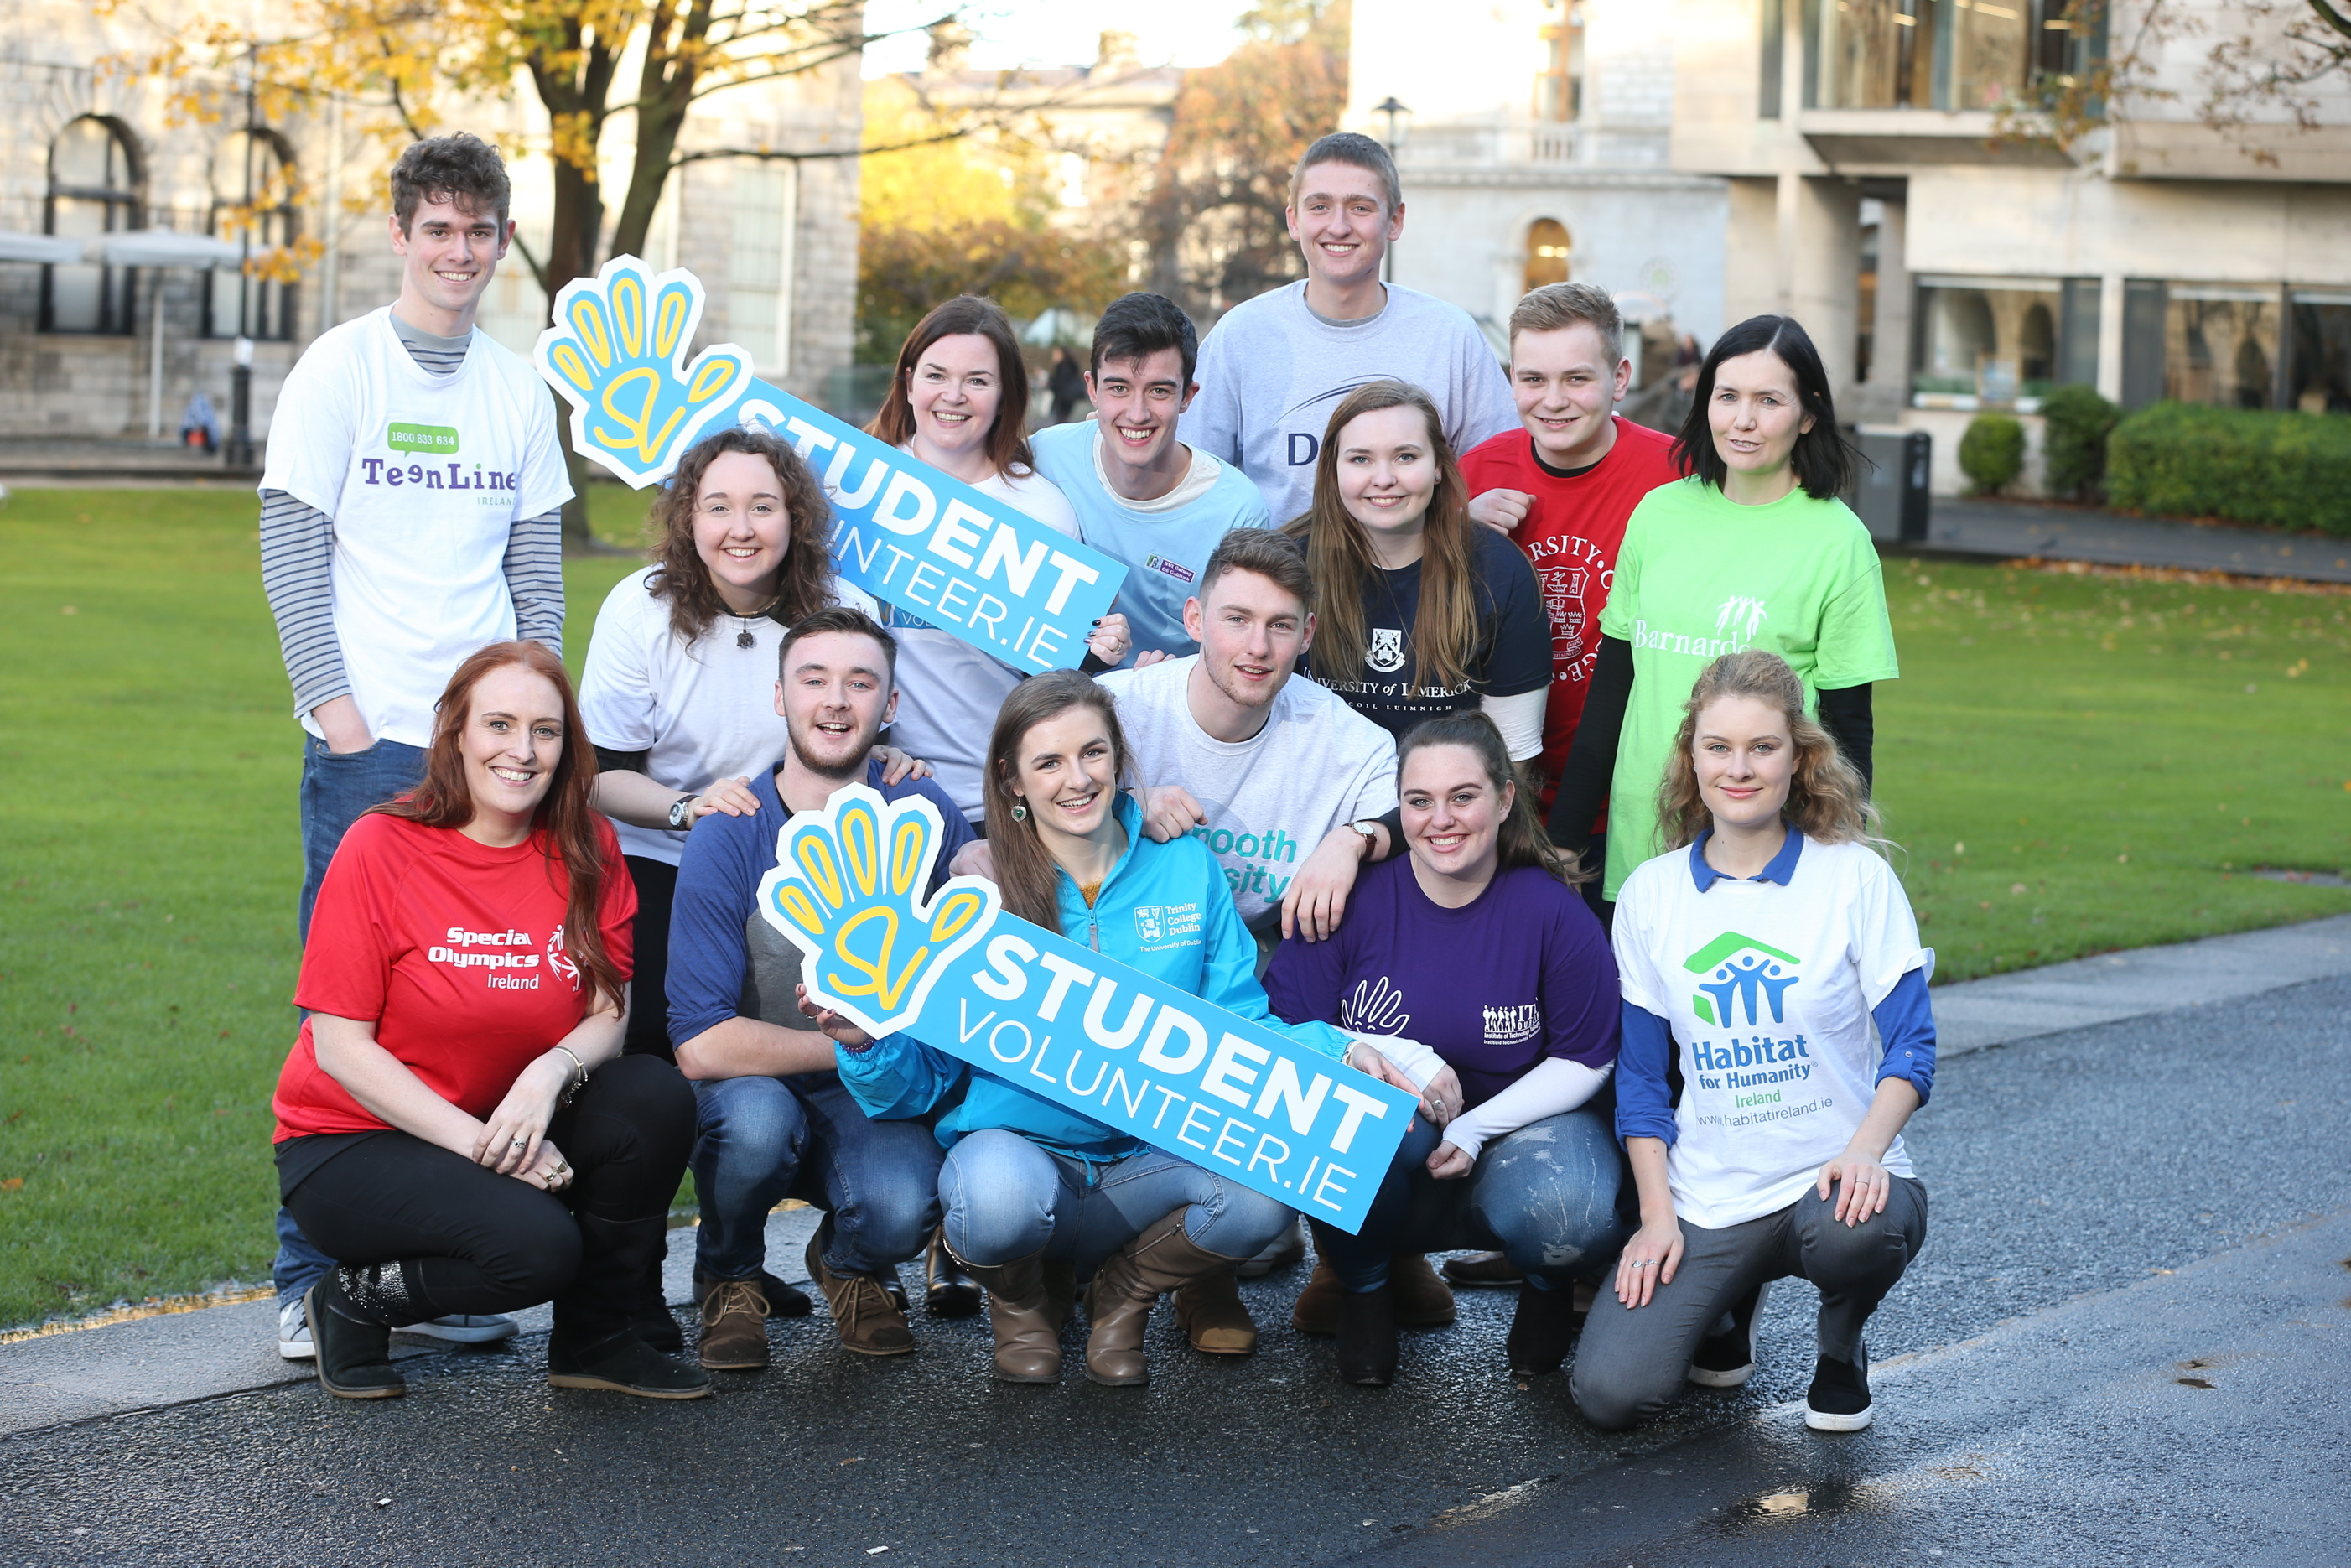 Celebrating the launch of studentvolunteer.ie are; Front row l-r: Breffni Gorman (Special Olympics Ireland), Dan Kiernan (UCD), Ciara Gaffney (Trinity College Dublin), Jenessa Scott (IT Tallaght), Lilly O'Mahony (Habitat for Humanity). Middle row l-r: Roisin O'Donovan (DIT), Darragh Moran (Maynooth University), Andrea Habenicht (UL), Suzanne Connolly (Barnardos). Back row l-r: Conor Doyle (TeenLine Ireland), Ann-Marie Bright (IT Tralee), Shane Gaughan (NUI Galway), Vito Moloney (DCU), Callum Petford (UCC)